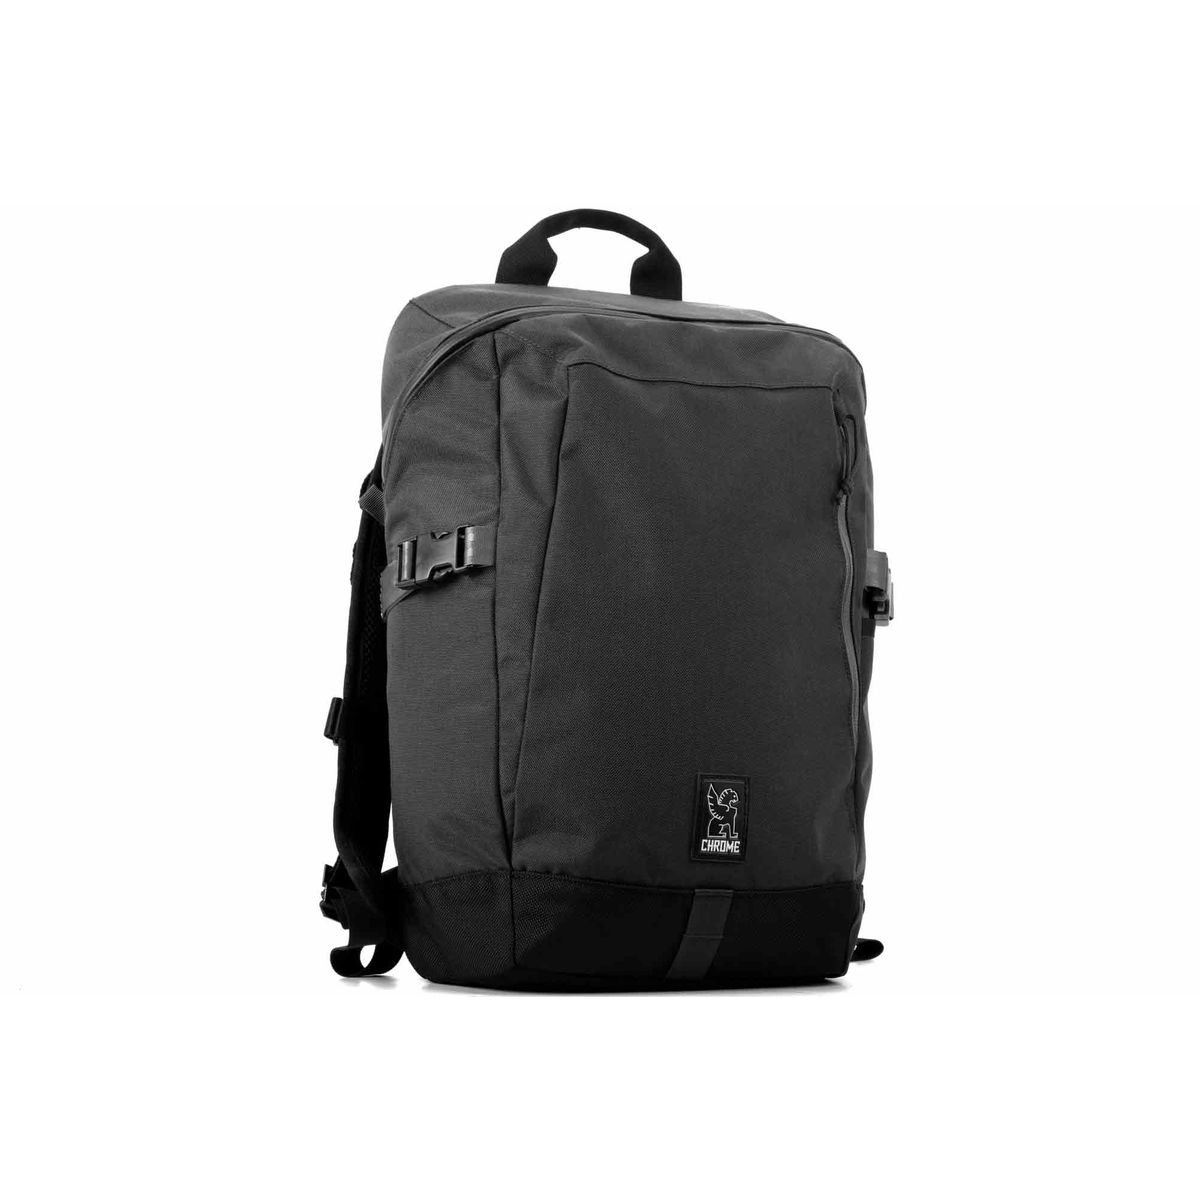 ROSTOV bike backpack